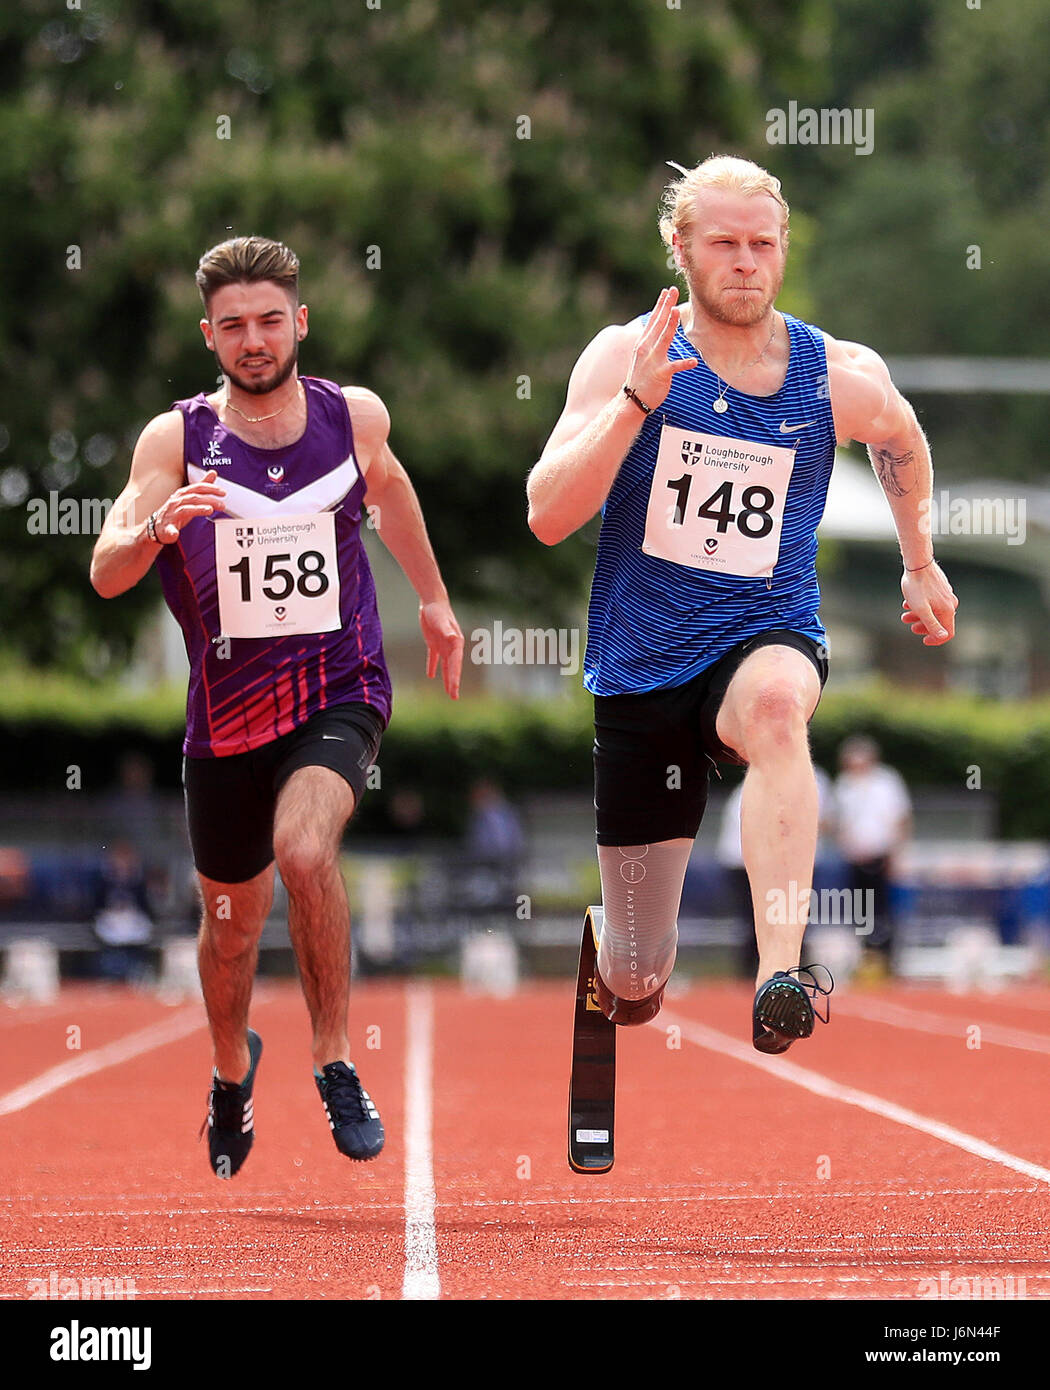 Jonnie Peacock (right) wins the 100 Metres Guest Men's Group D Race during the Loughborough International Athletics - Stock Image